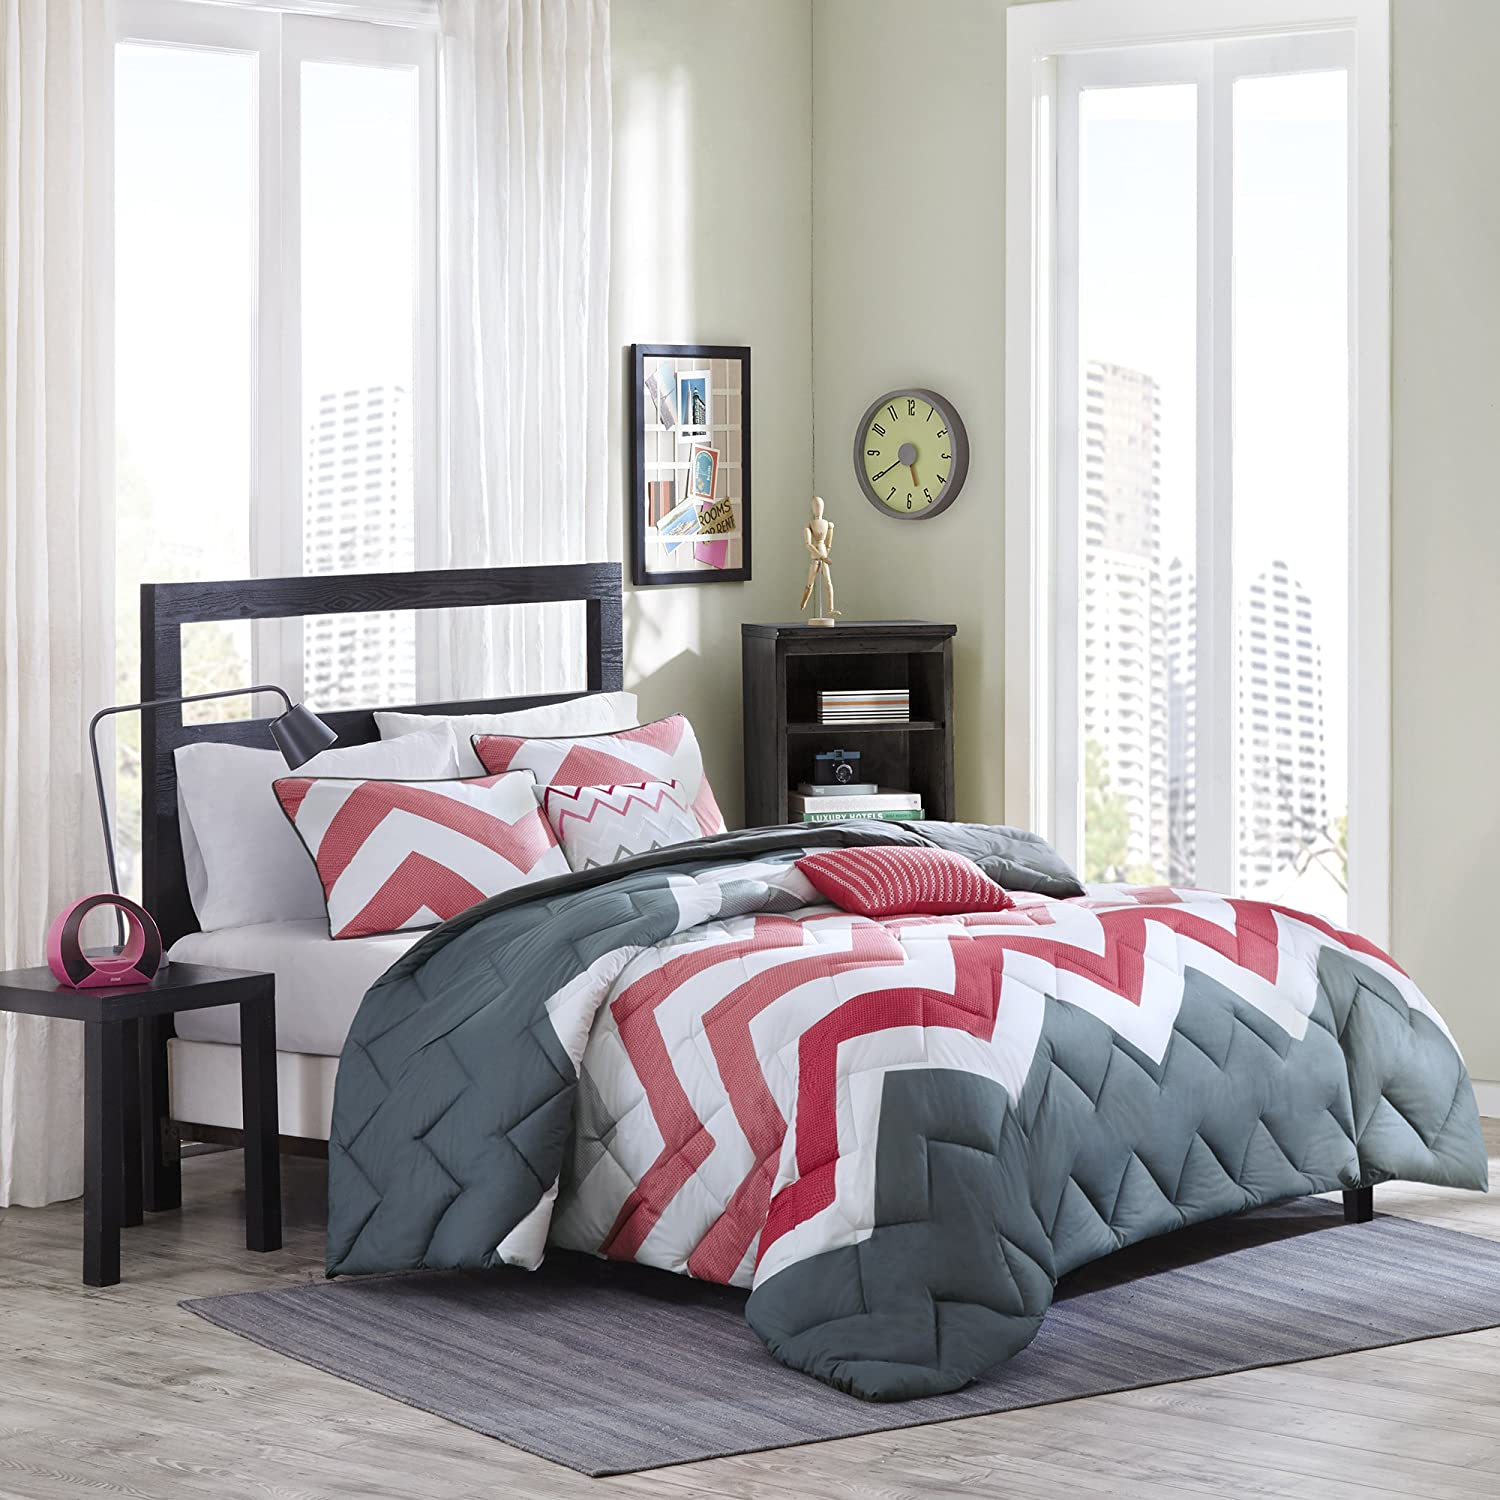 Cozy Soft - Jamie Comforter Set - 5 Piece - Coral, White, Gray - Chevron, Solid Pattern - Full/Queen size